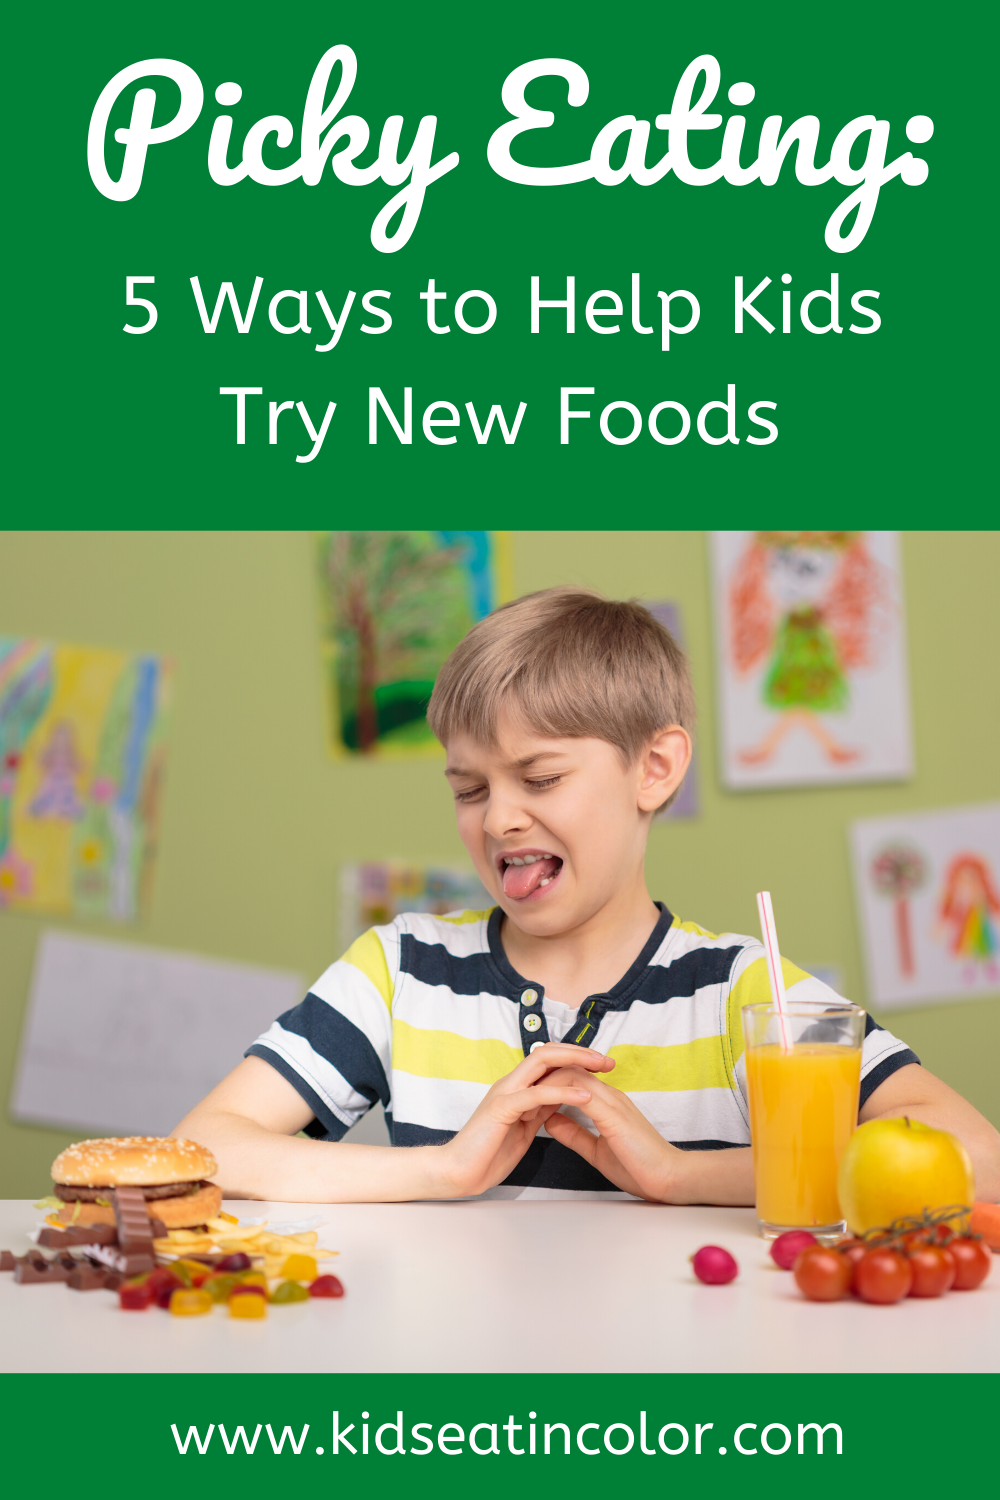 146bc7fbfe9deb873c0ddd99bbb04980 - How To Get My Picky Eater To Try New Foods